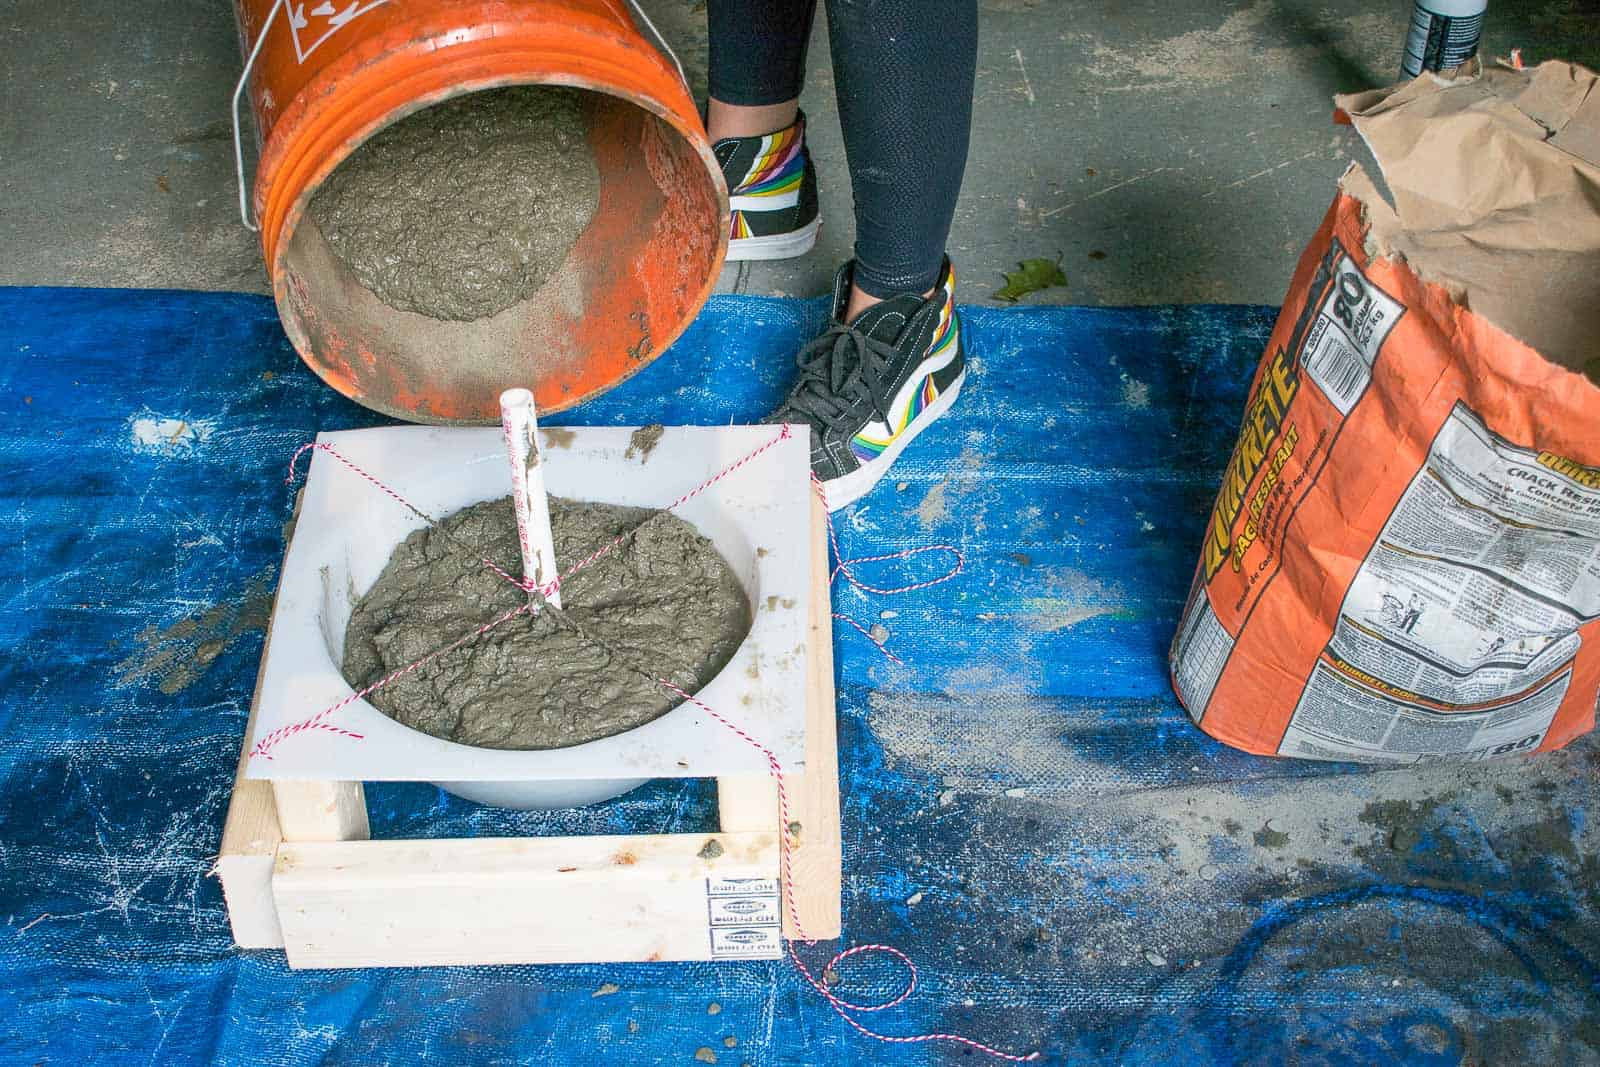 mix concrete and pour in mold